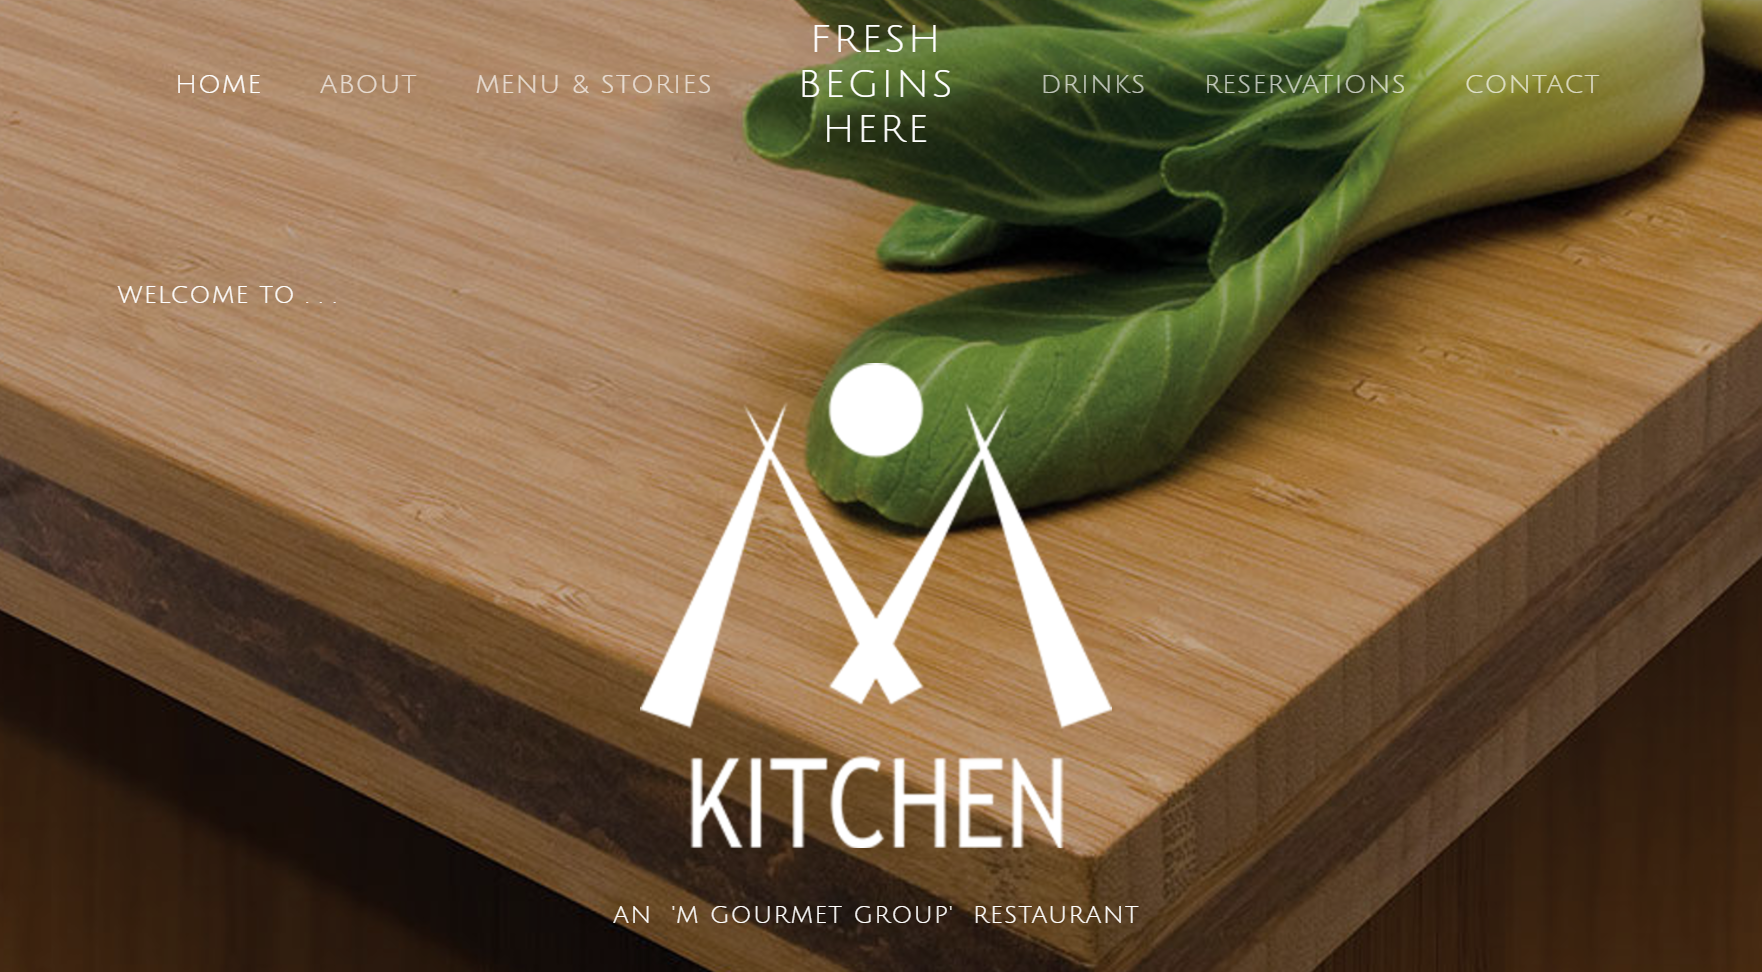 M Kitchen - Fresh. Healthy. Local.Featuring a full menu, food photos, online reservations and more!